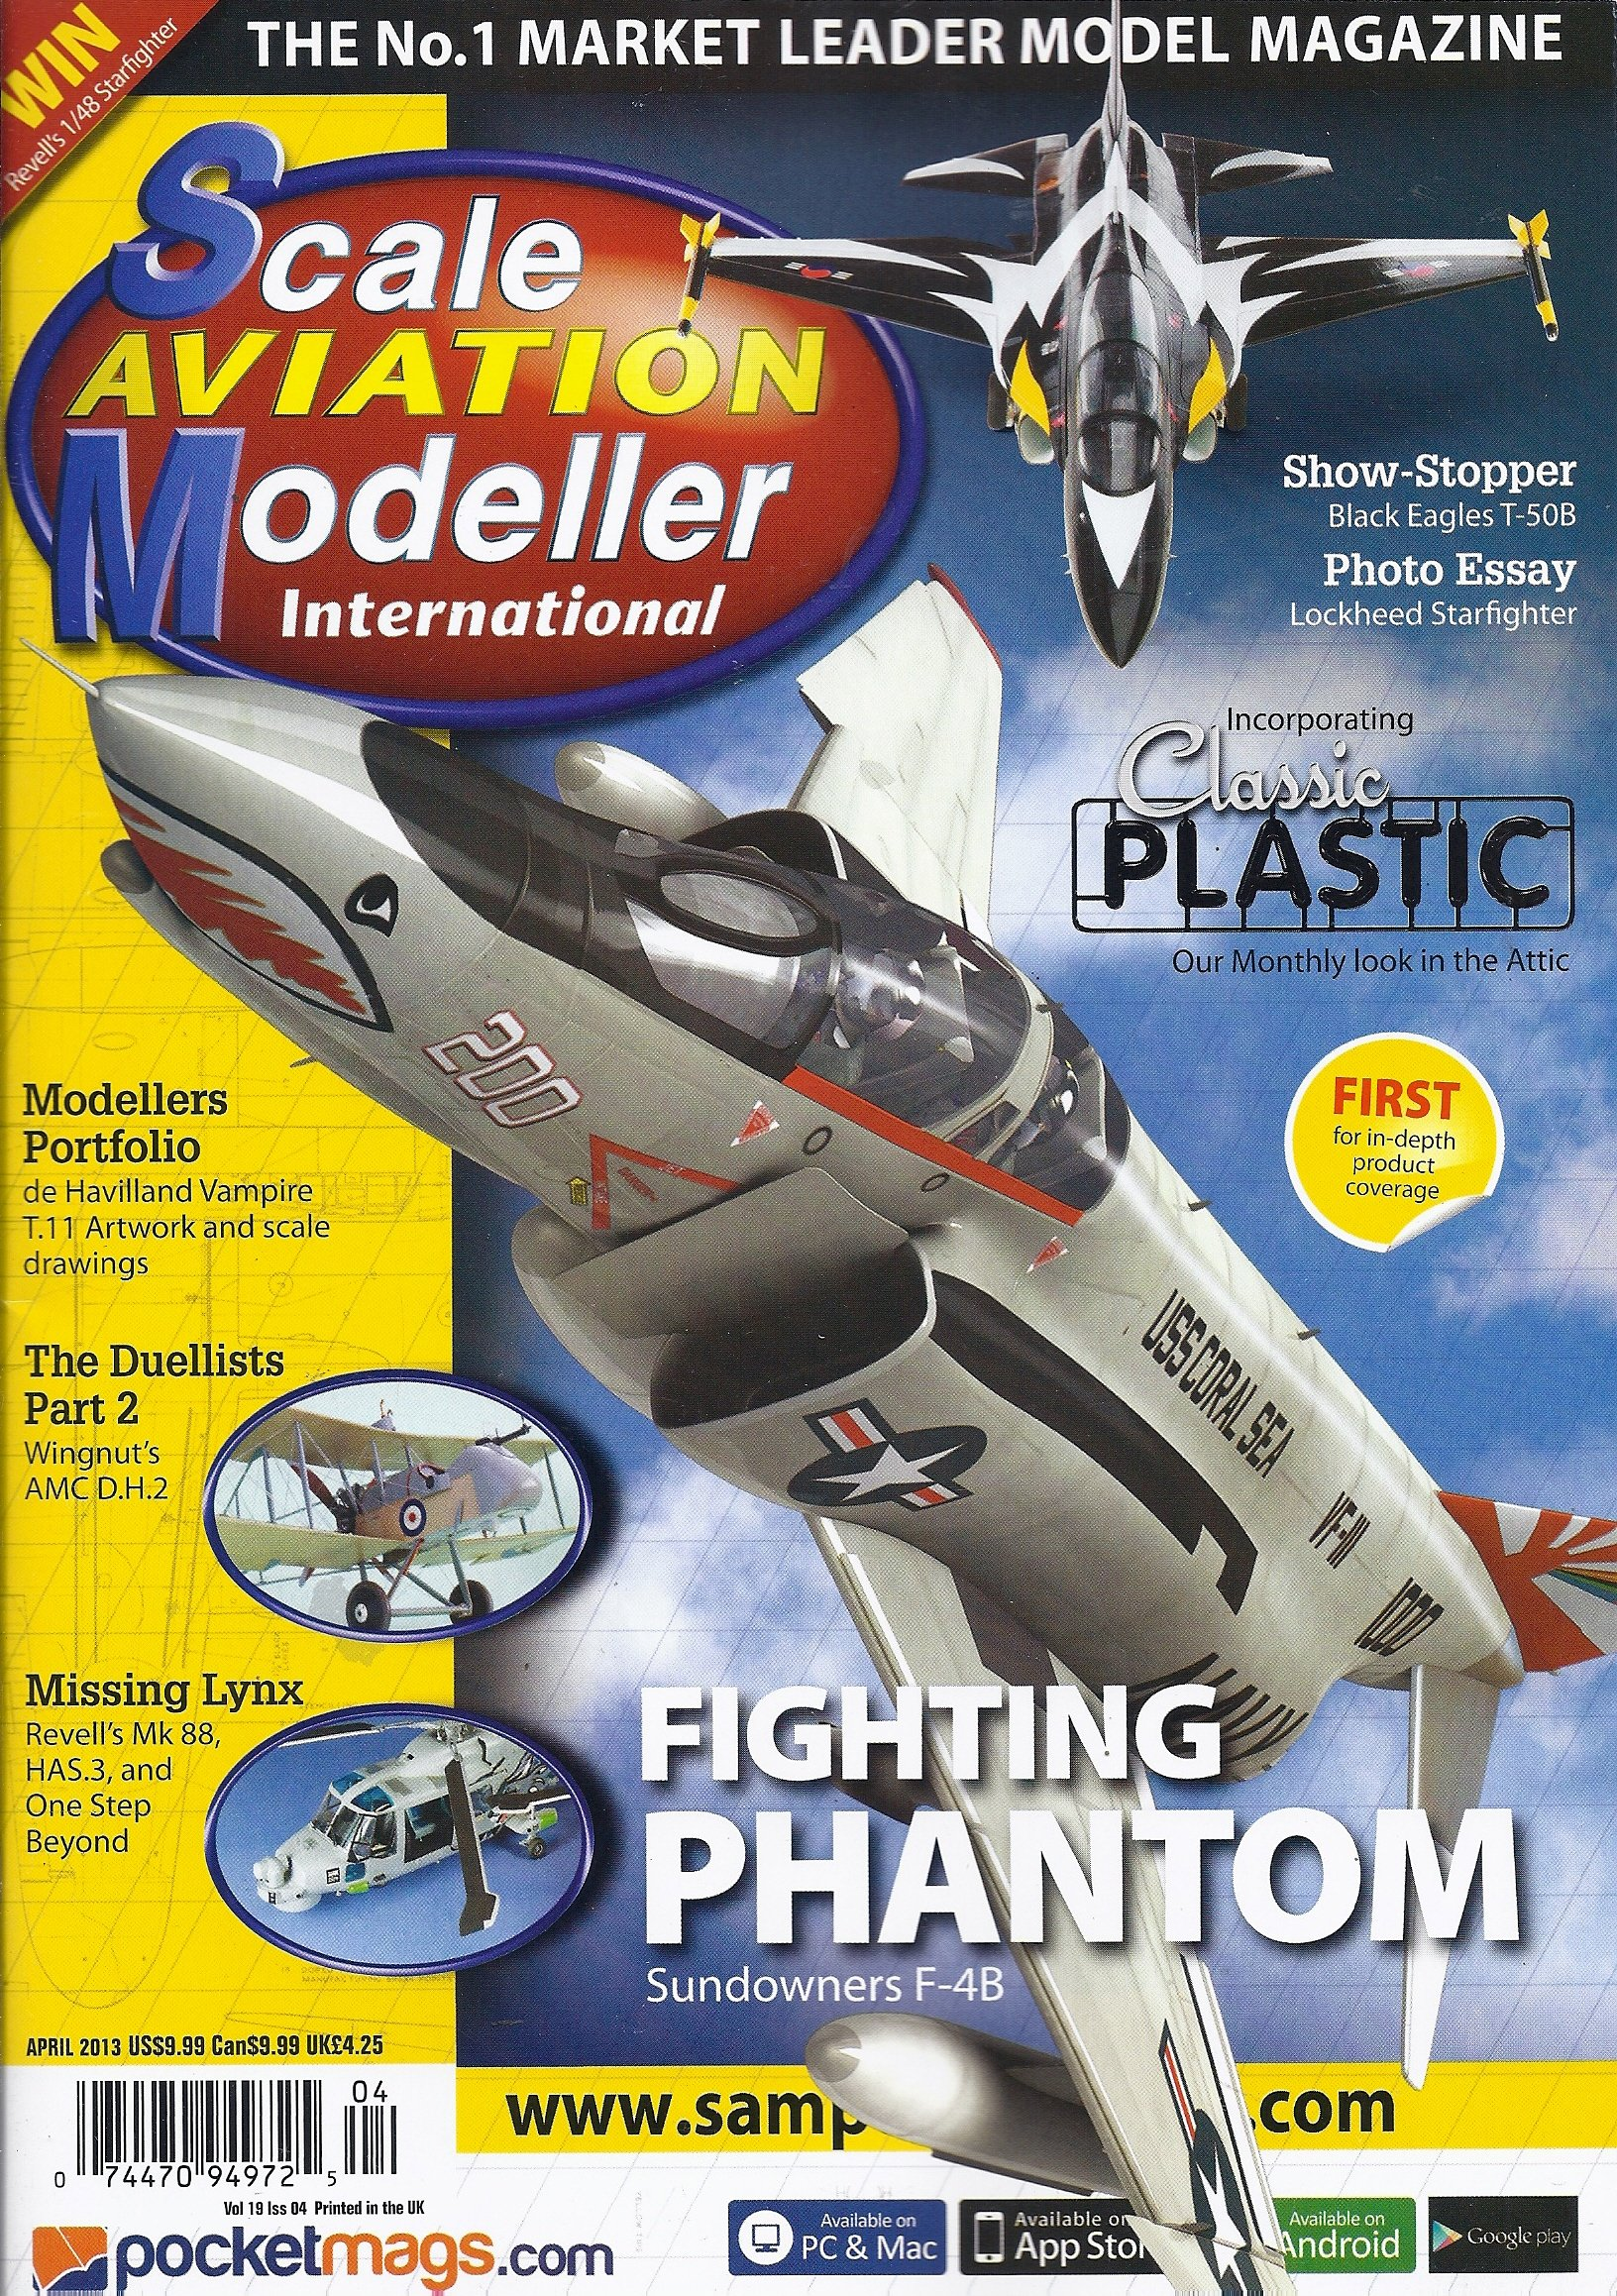 Download Scale Aviation Modeller International (April 2013) Text fb2 ebook